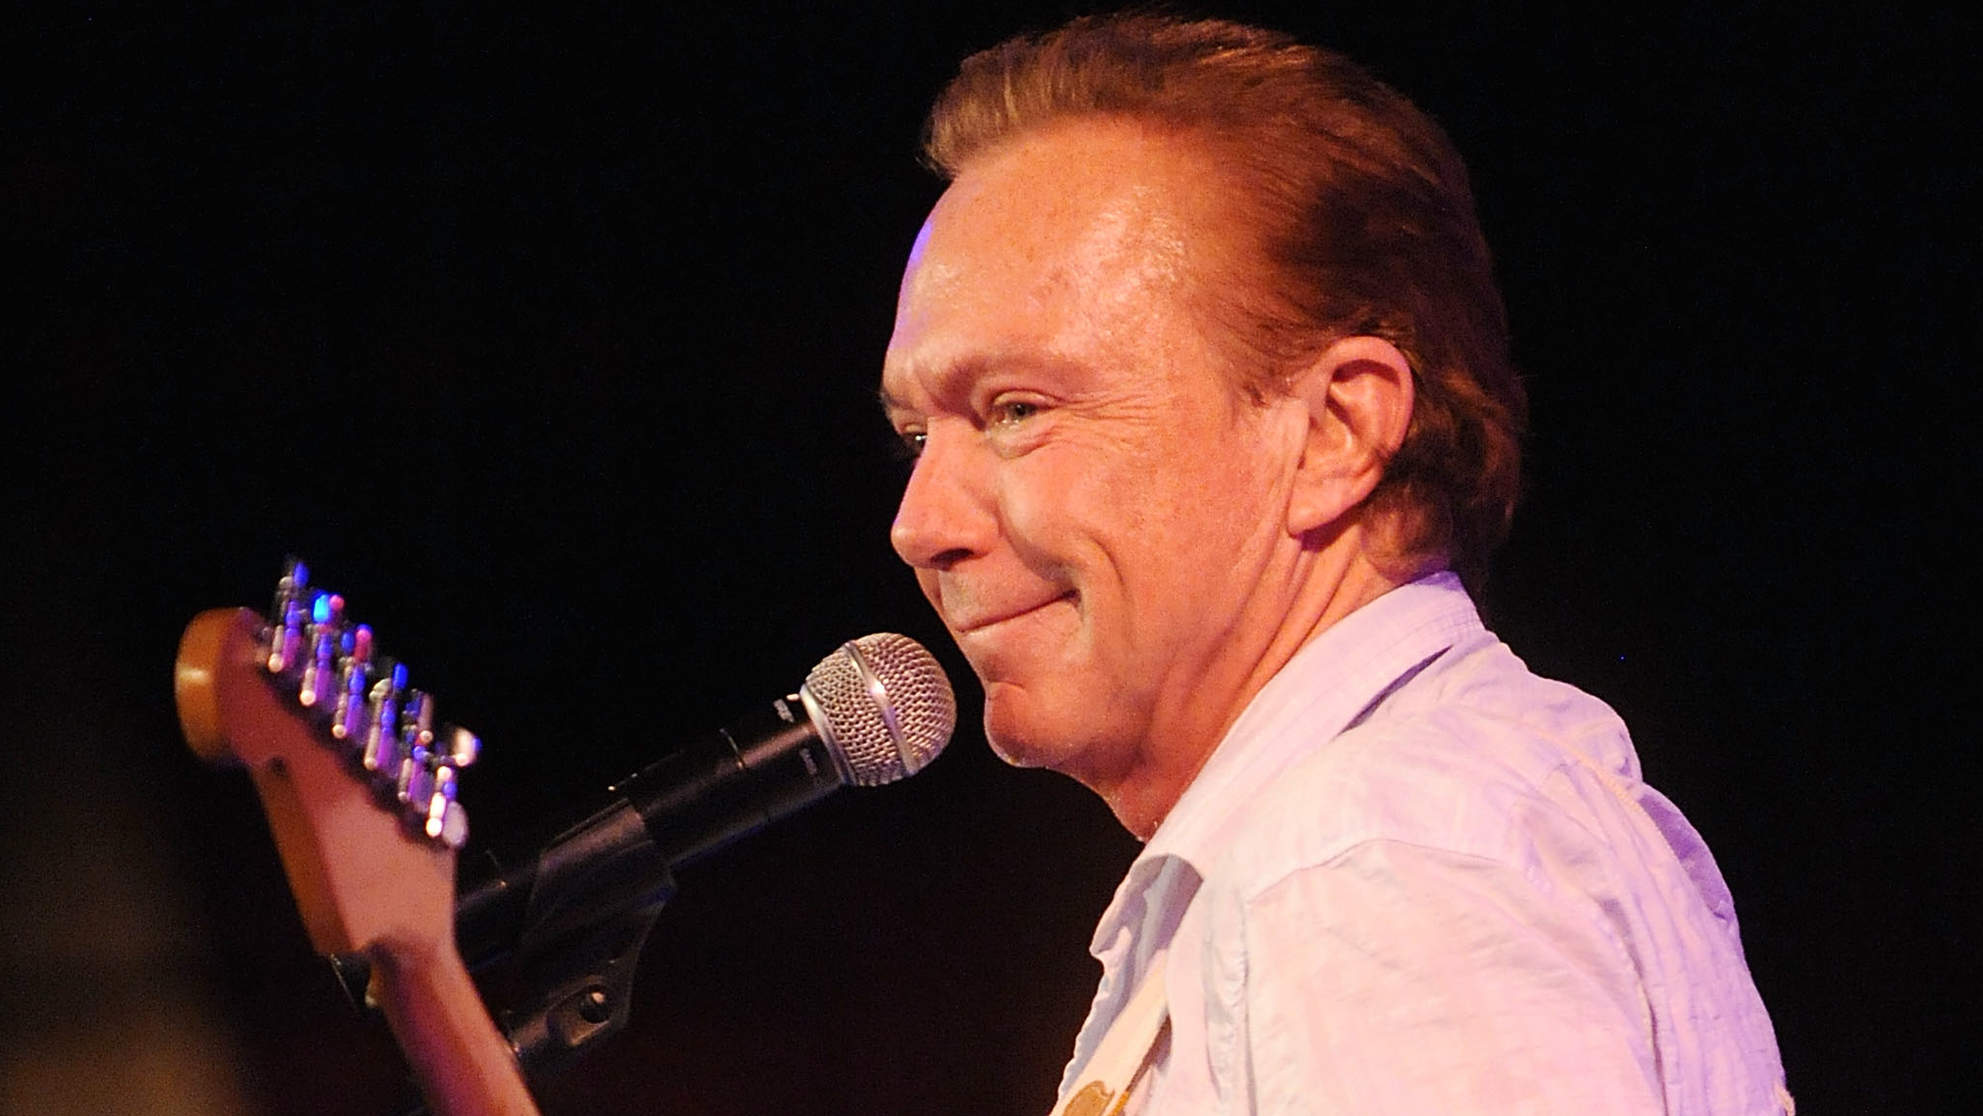 David Cassidy Died of Liver and Kidney Failure. Here's What You Should Know